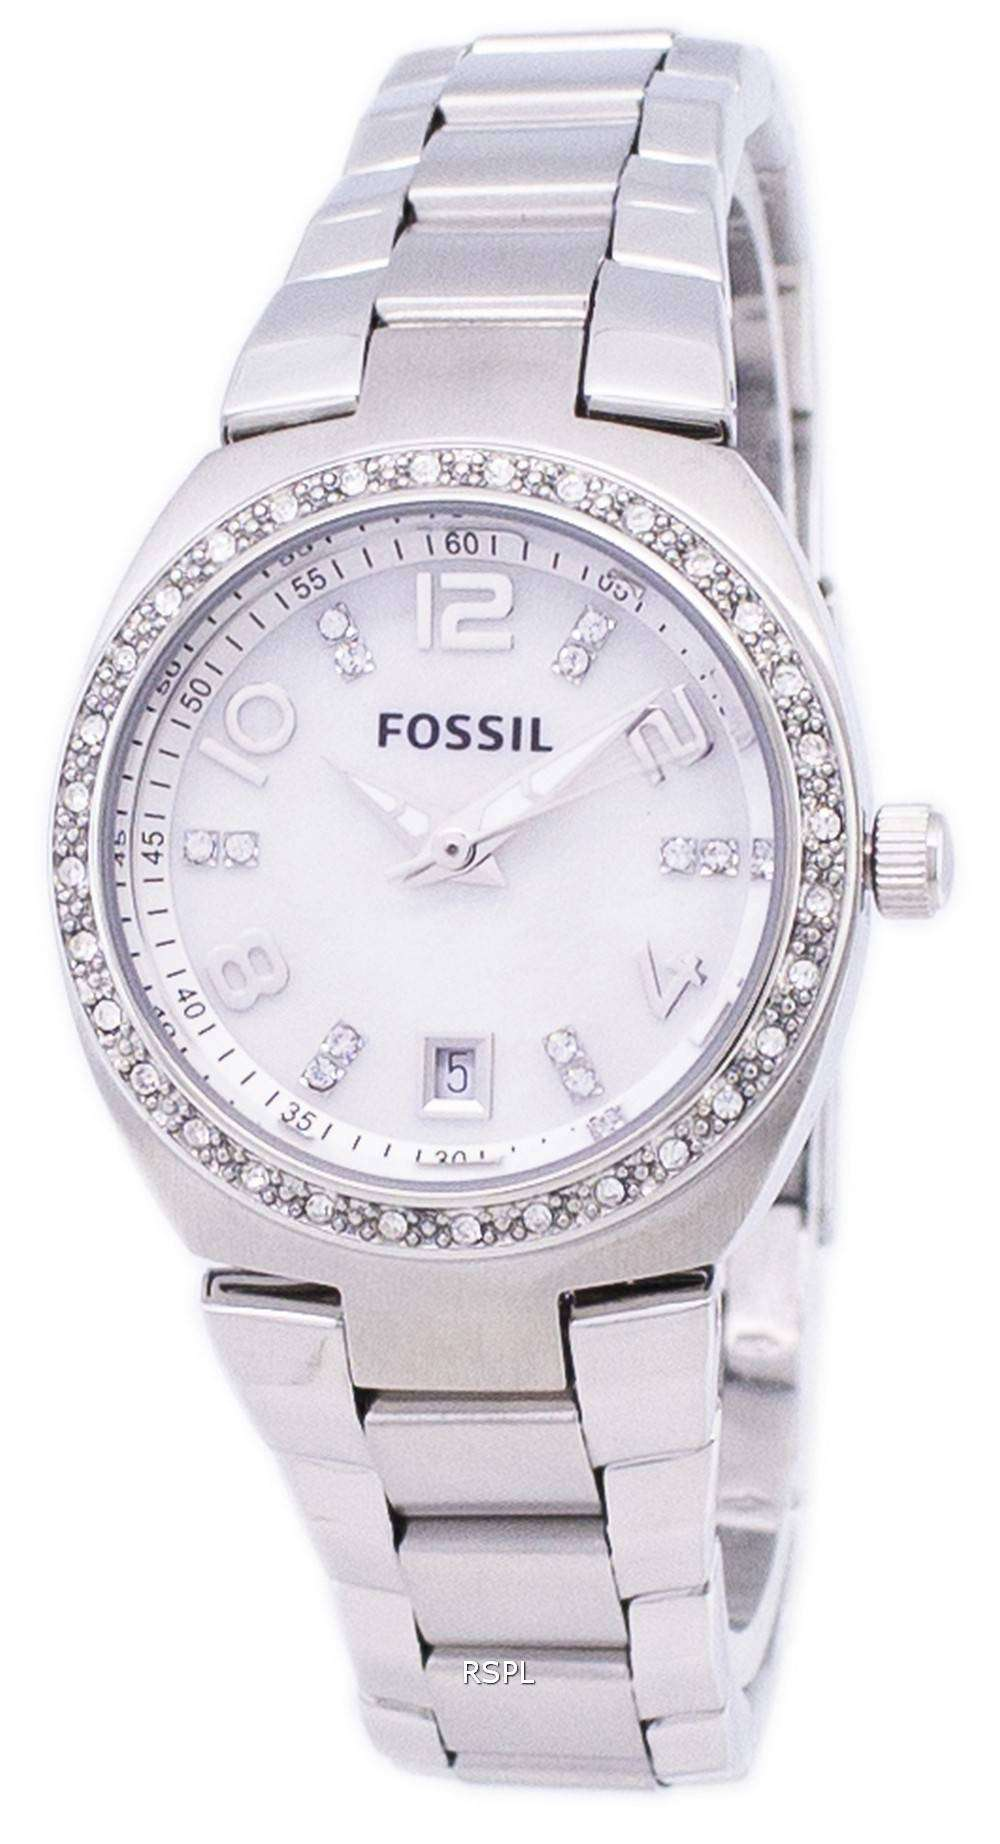 Fossil flash swarovski crystal mother of pearl dial am4141 womens watch downunderwatches for Mother of pearl dial watch